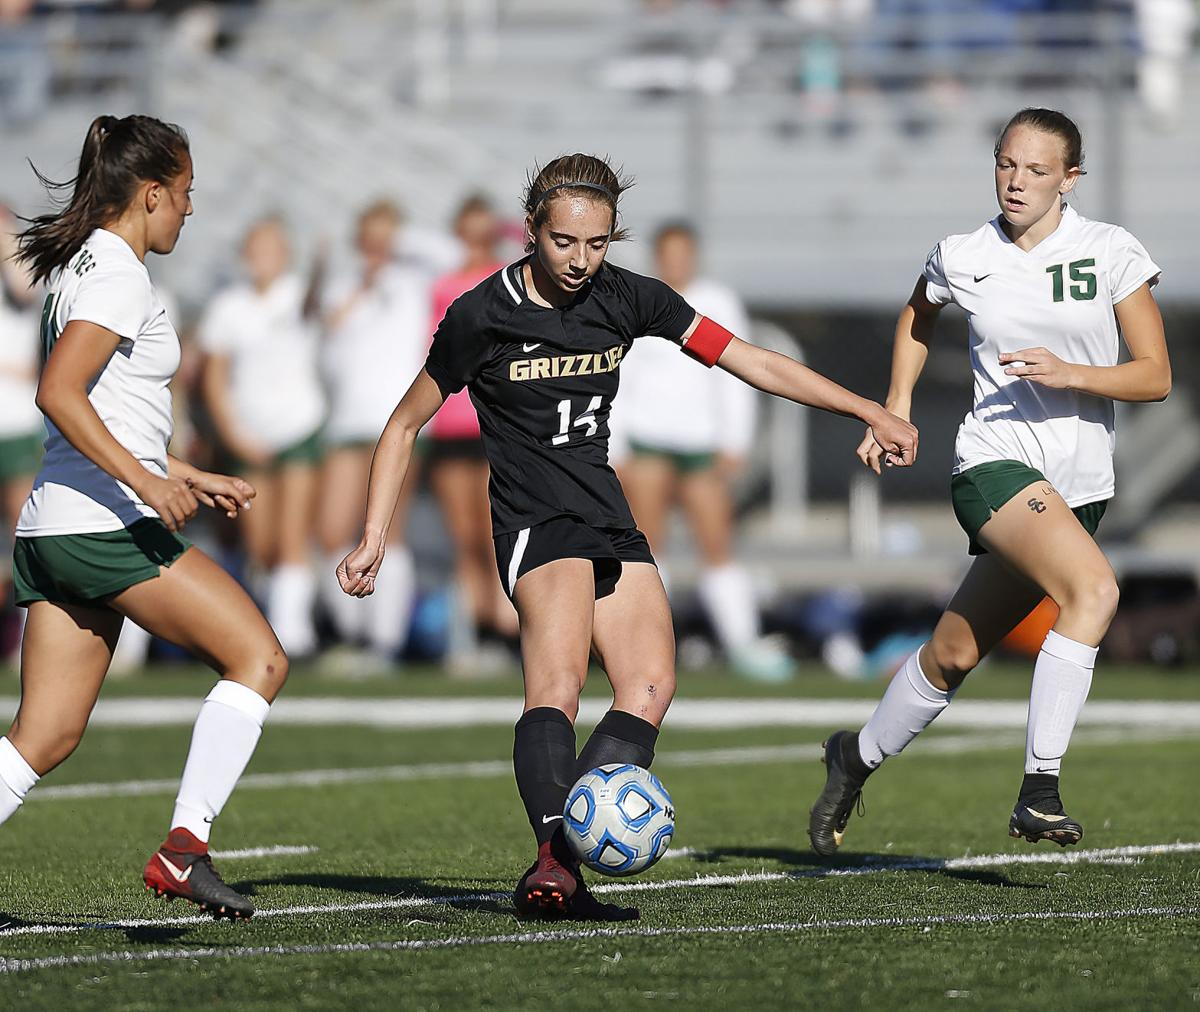 Tough finish for Grizzlies at state semis